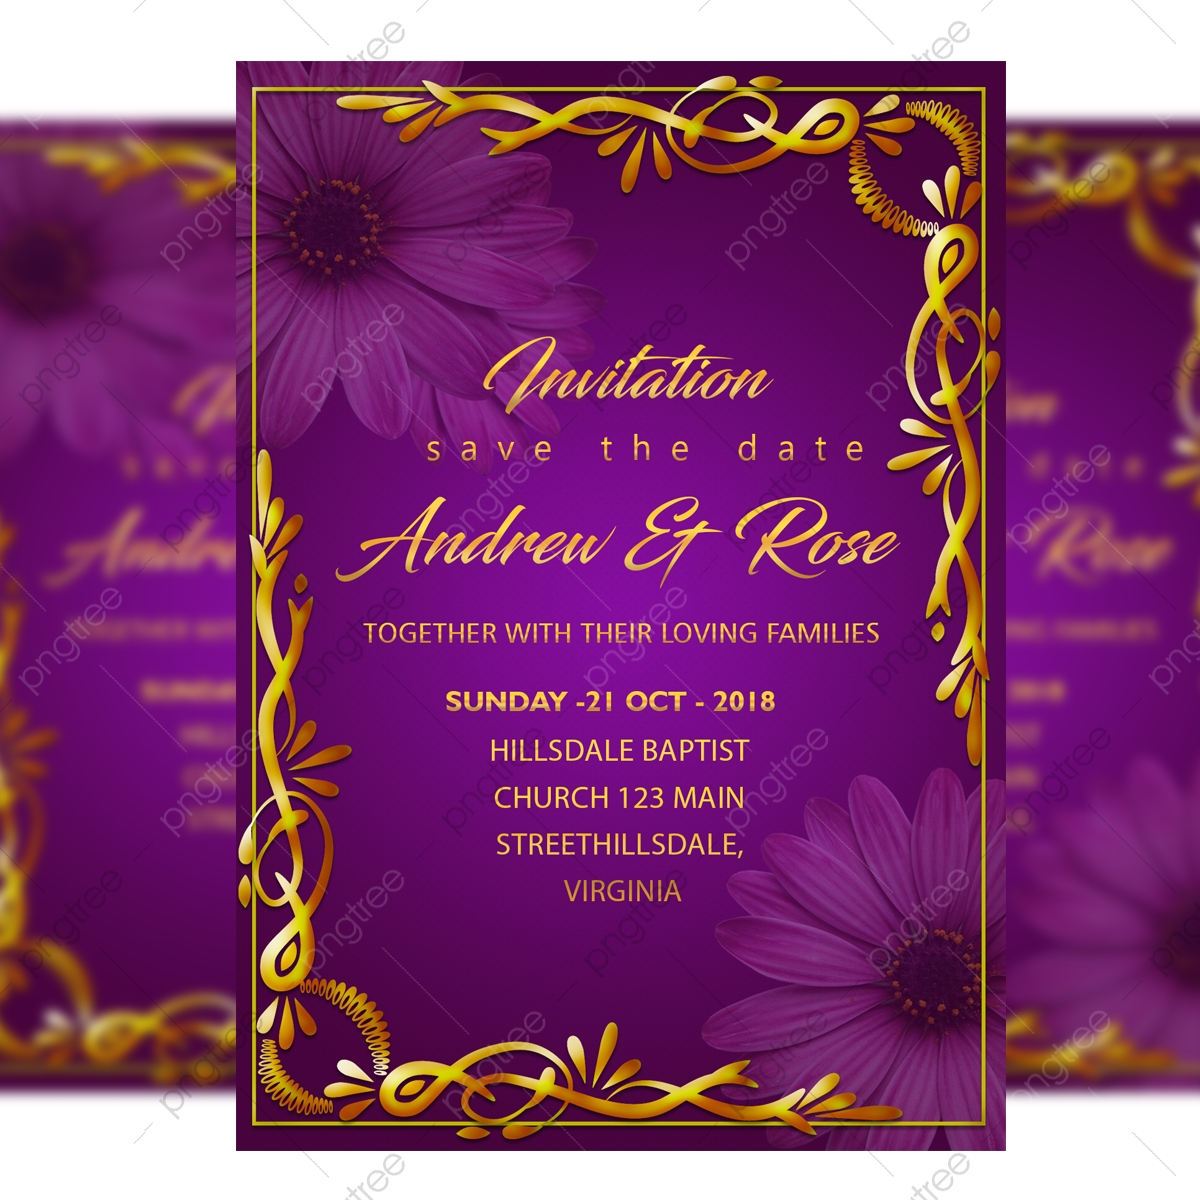 Gold Border Wedding Invitation Card Template With With Gold Frame And Purple Background Template For Free Download On Pngtree